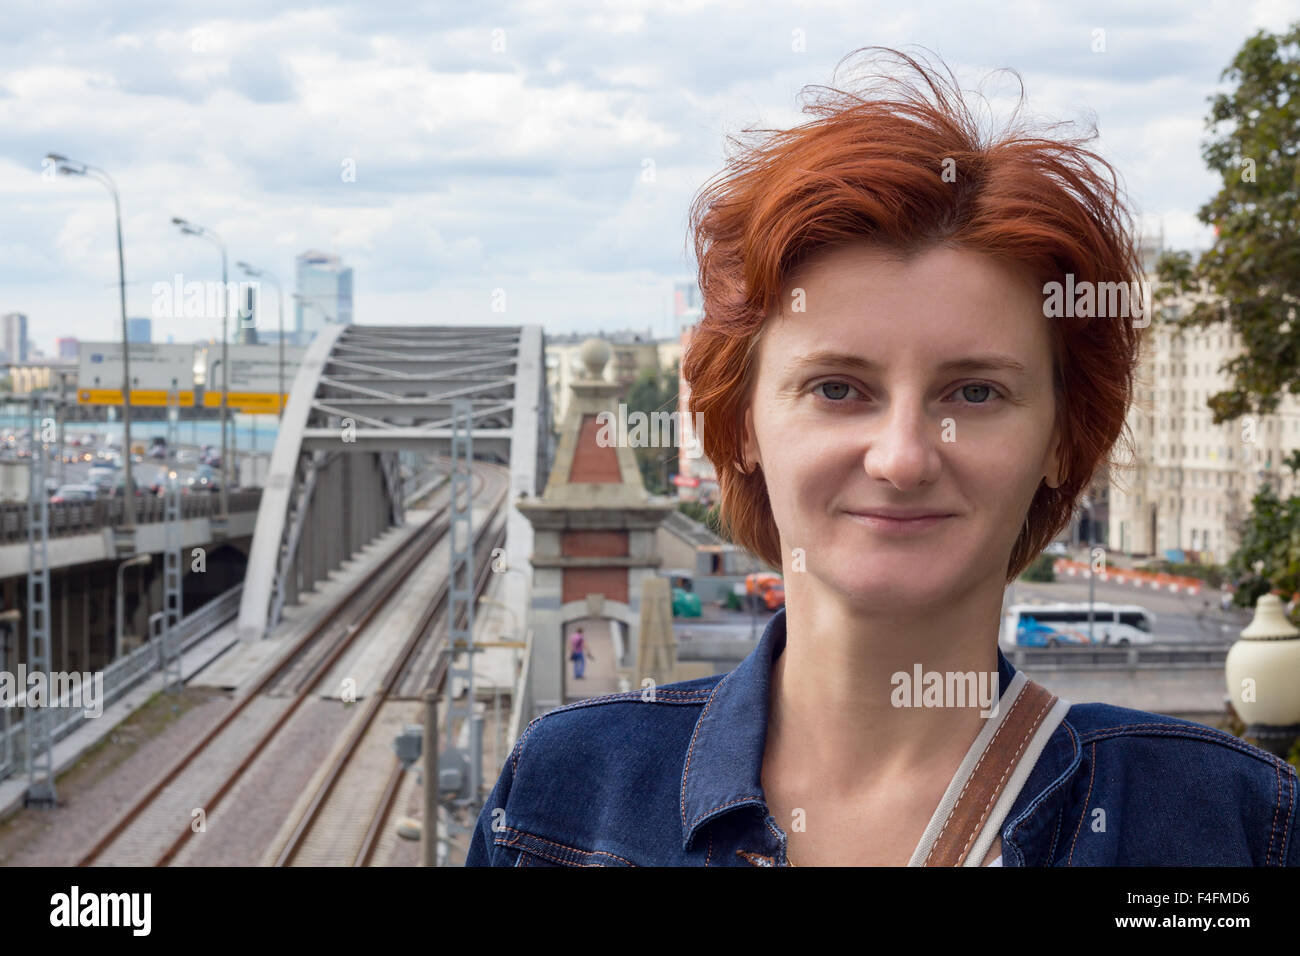 Portrait of a girl on the background of the cityscape - Stock Image